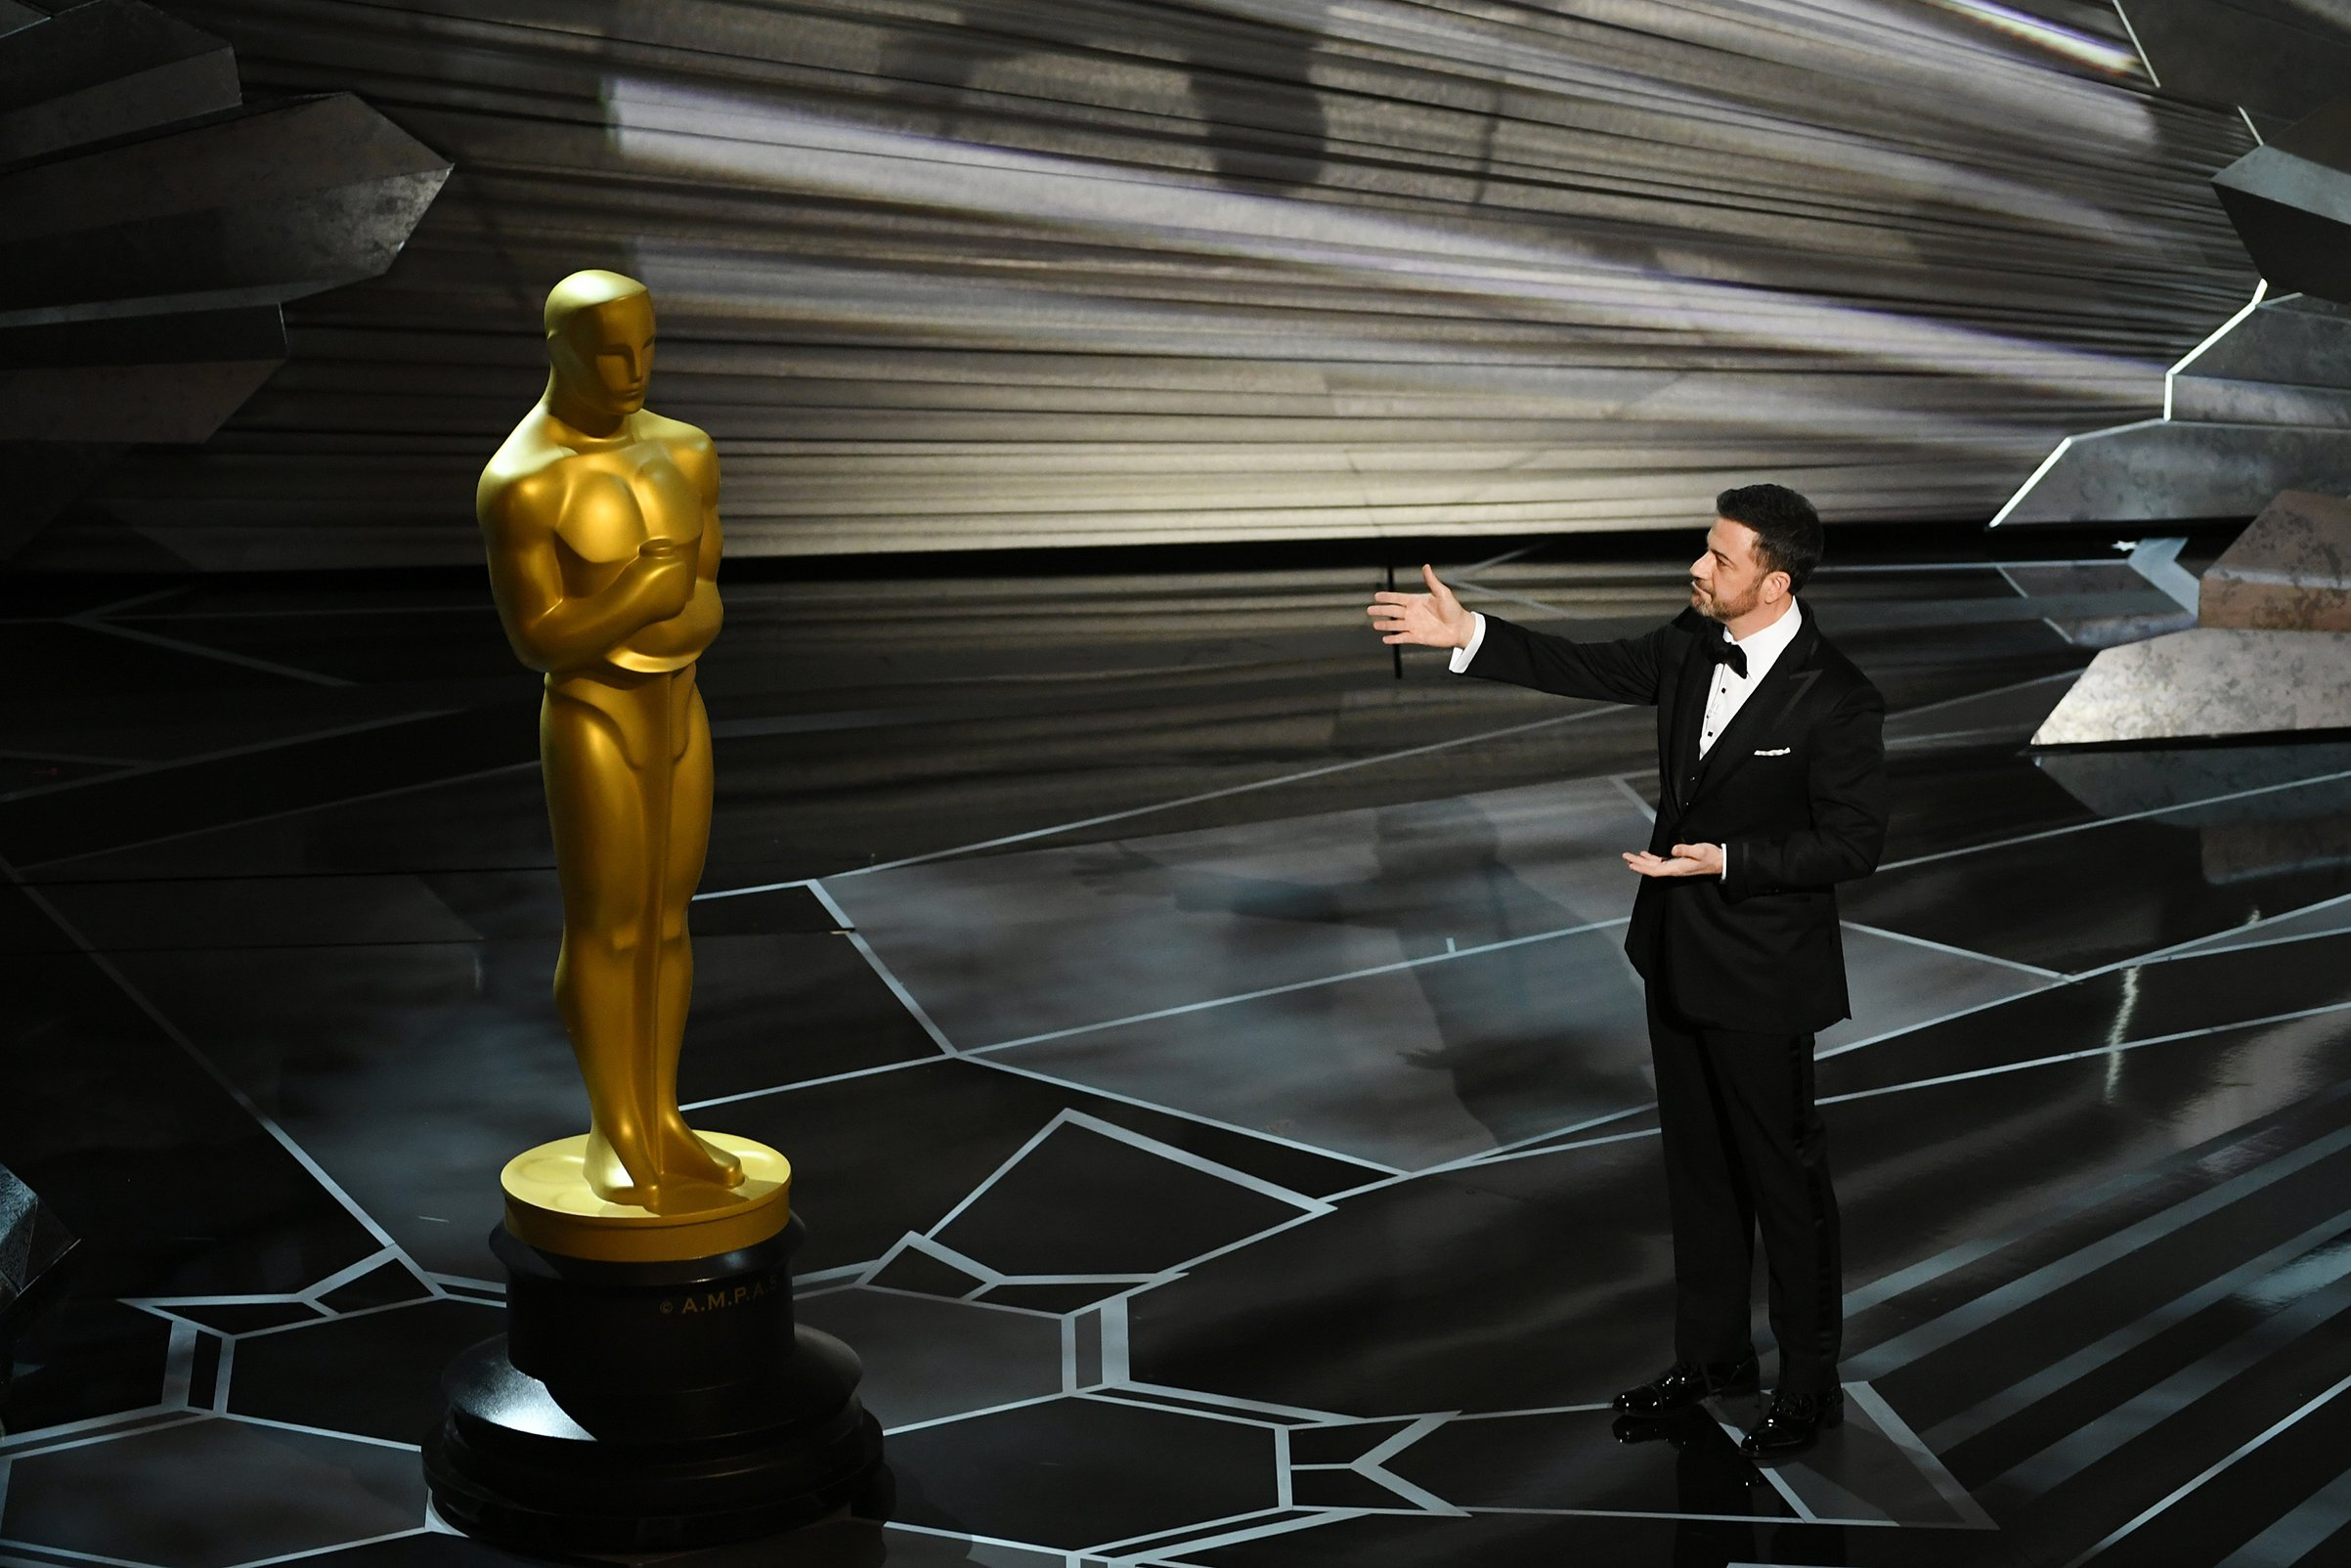 Right off the bat, host Jimmy Kimmel took shots at Donald Trump during the opening of the 90th Academy Awards on Sunday night, including about the president tweeting from a gold toilet. The late-night host quipped that Trump very much liked the first three quarters of Get Out. He also said the Oscar was so …